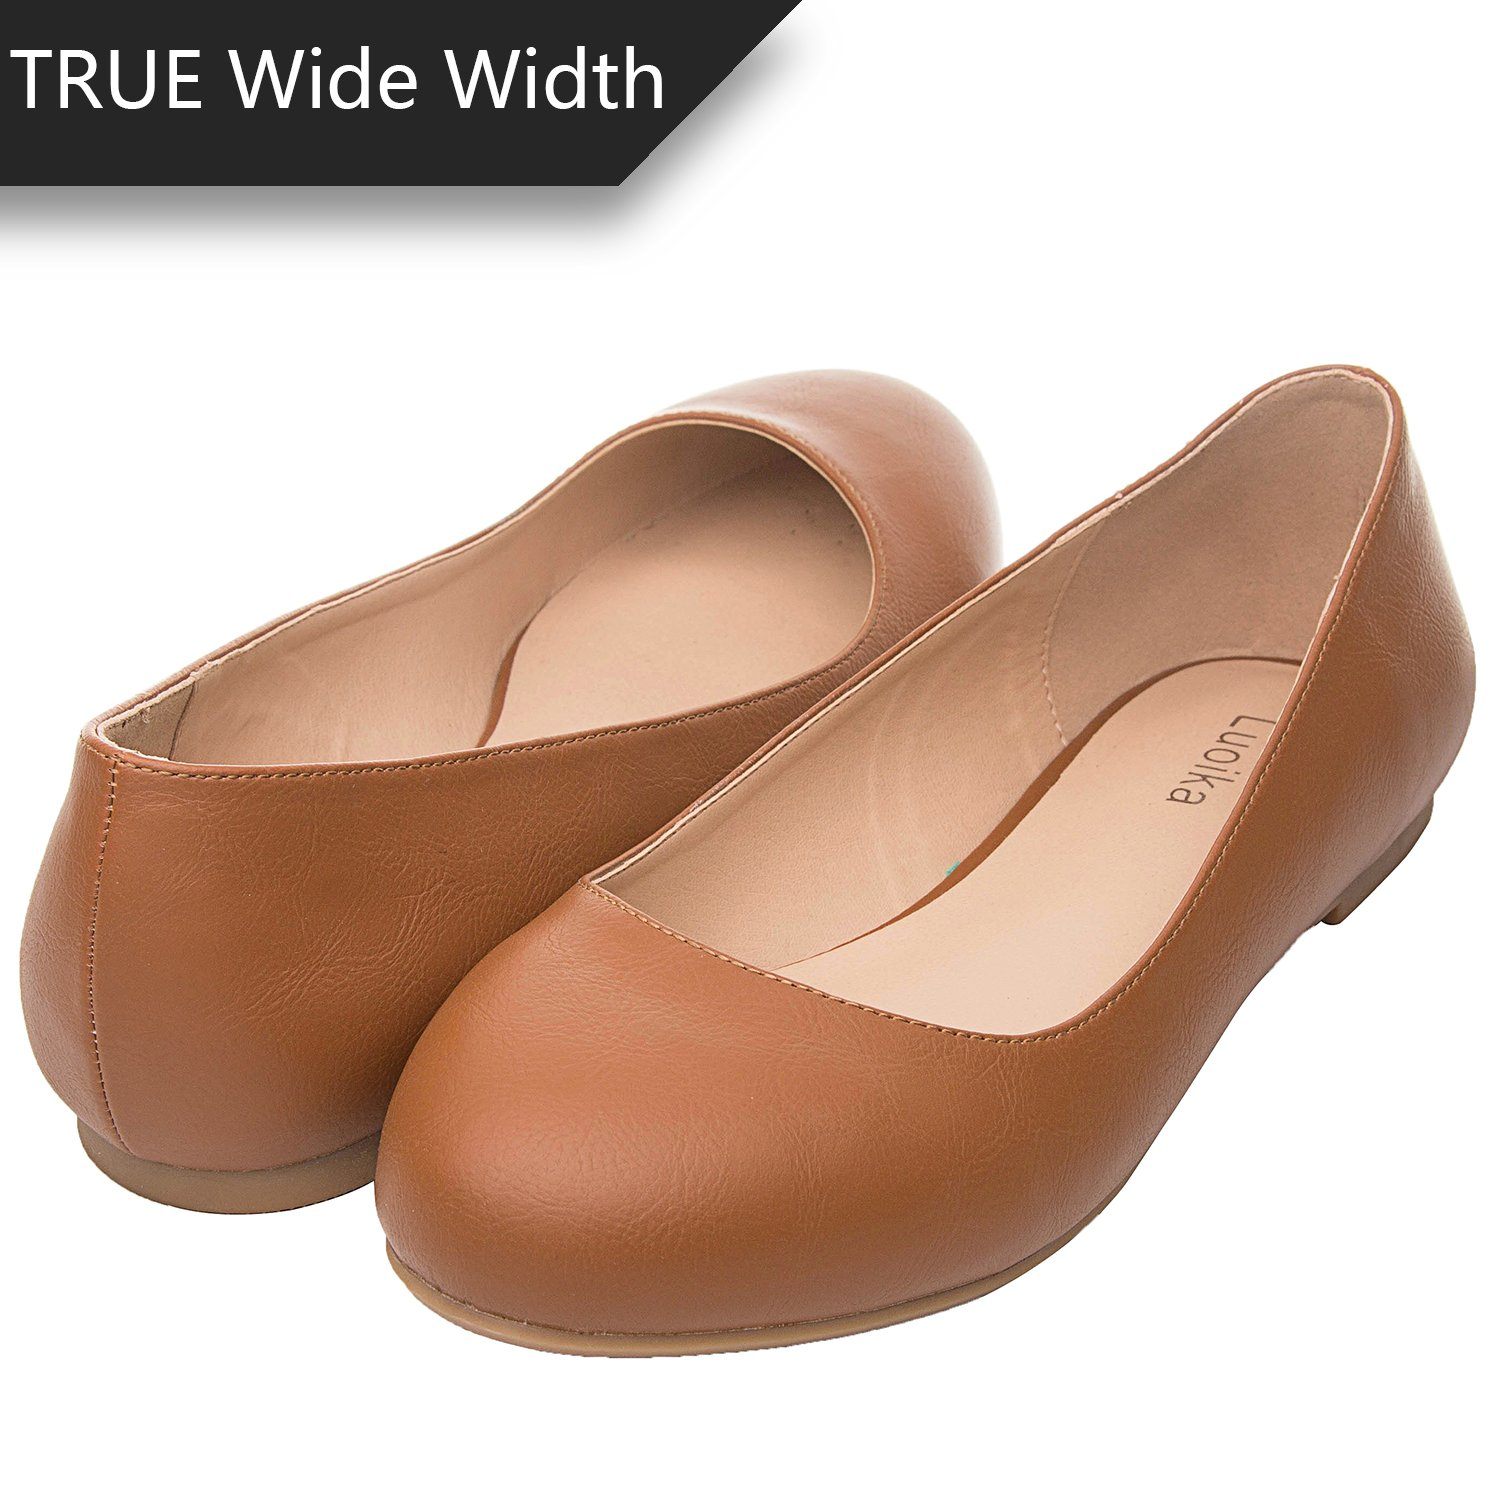 Luoika Women's Wide Width Flat Shoes - Comfortable Slip On Round Toe Ballet Flats. (180110 Brown PU,8WW)